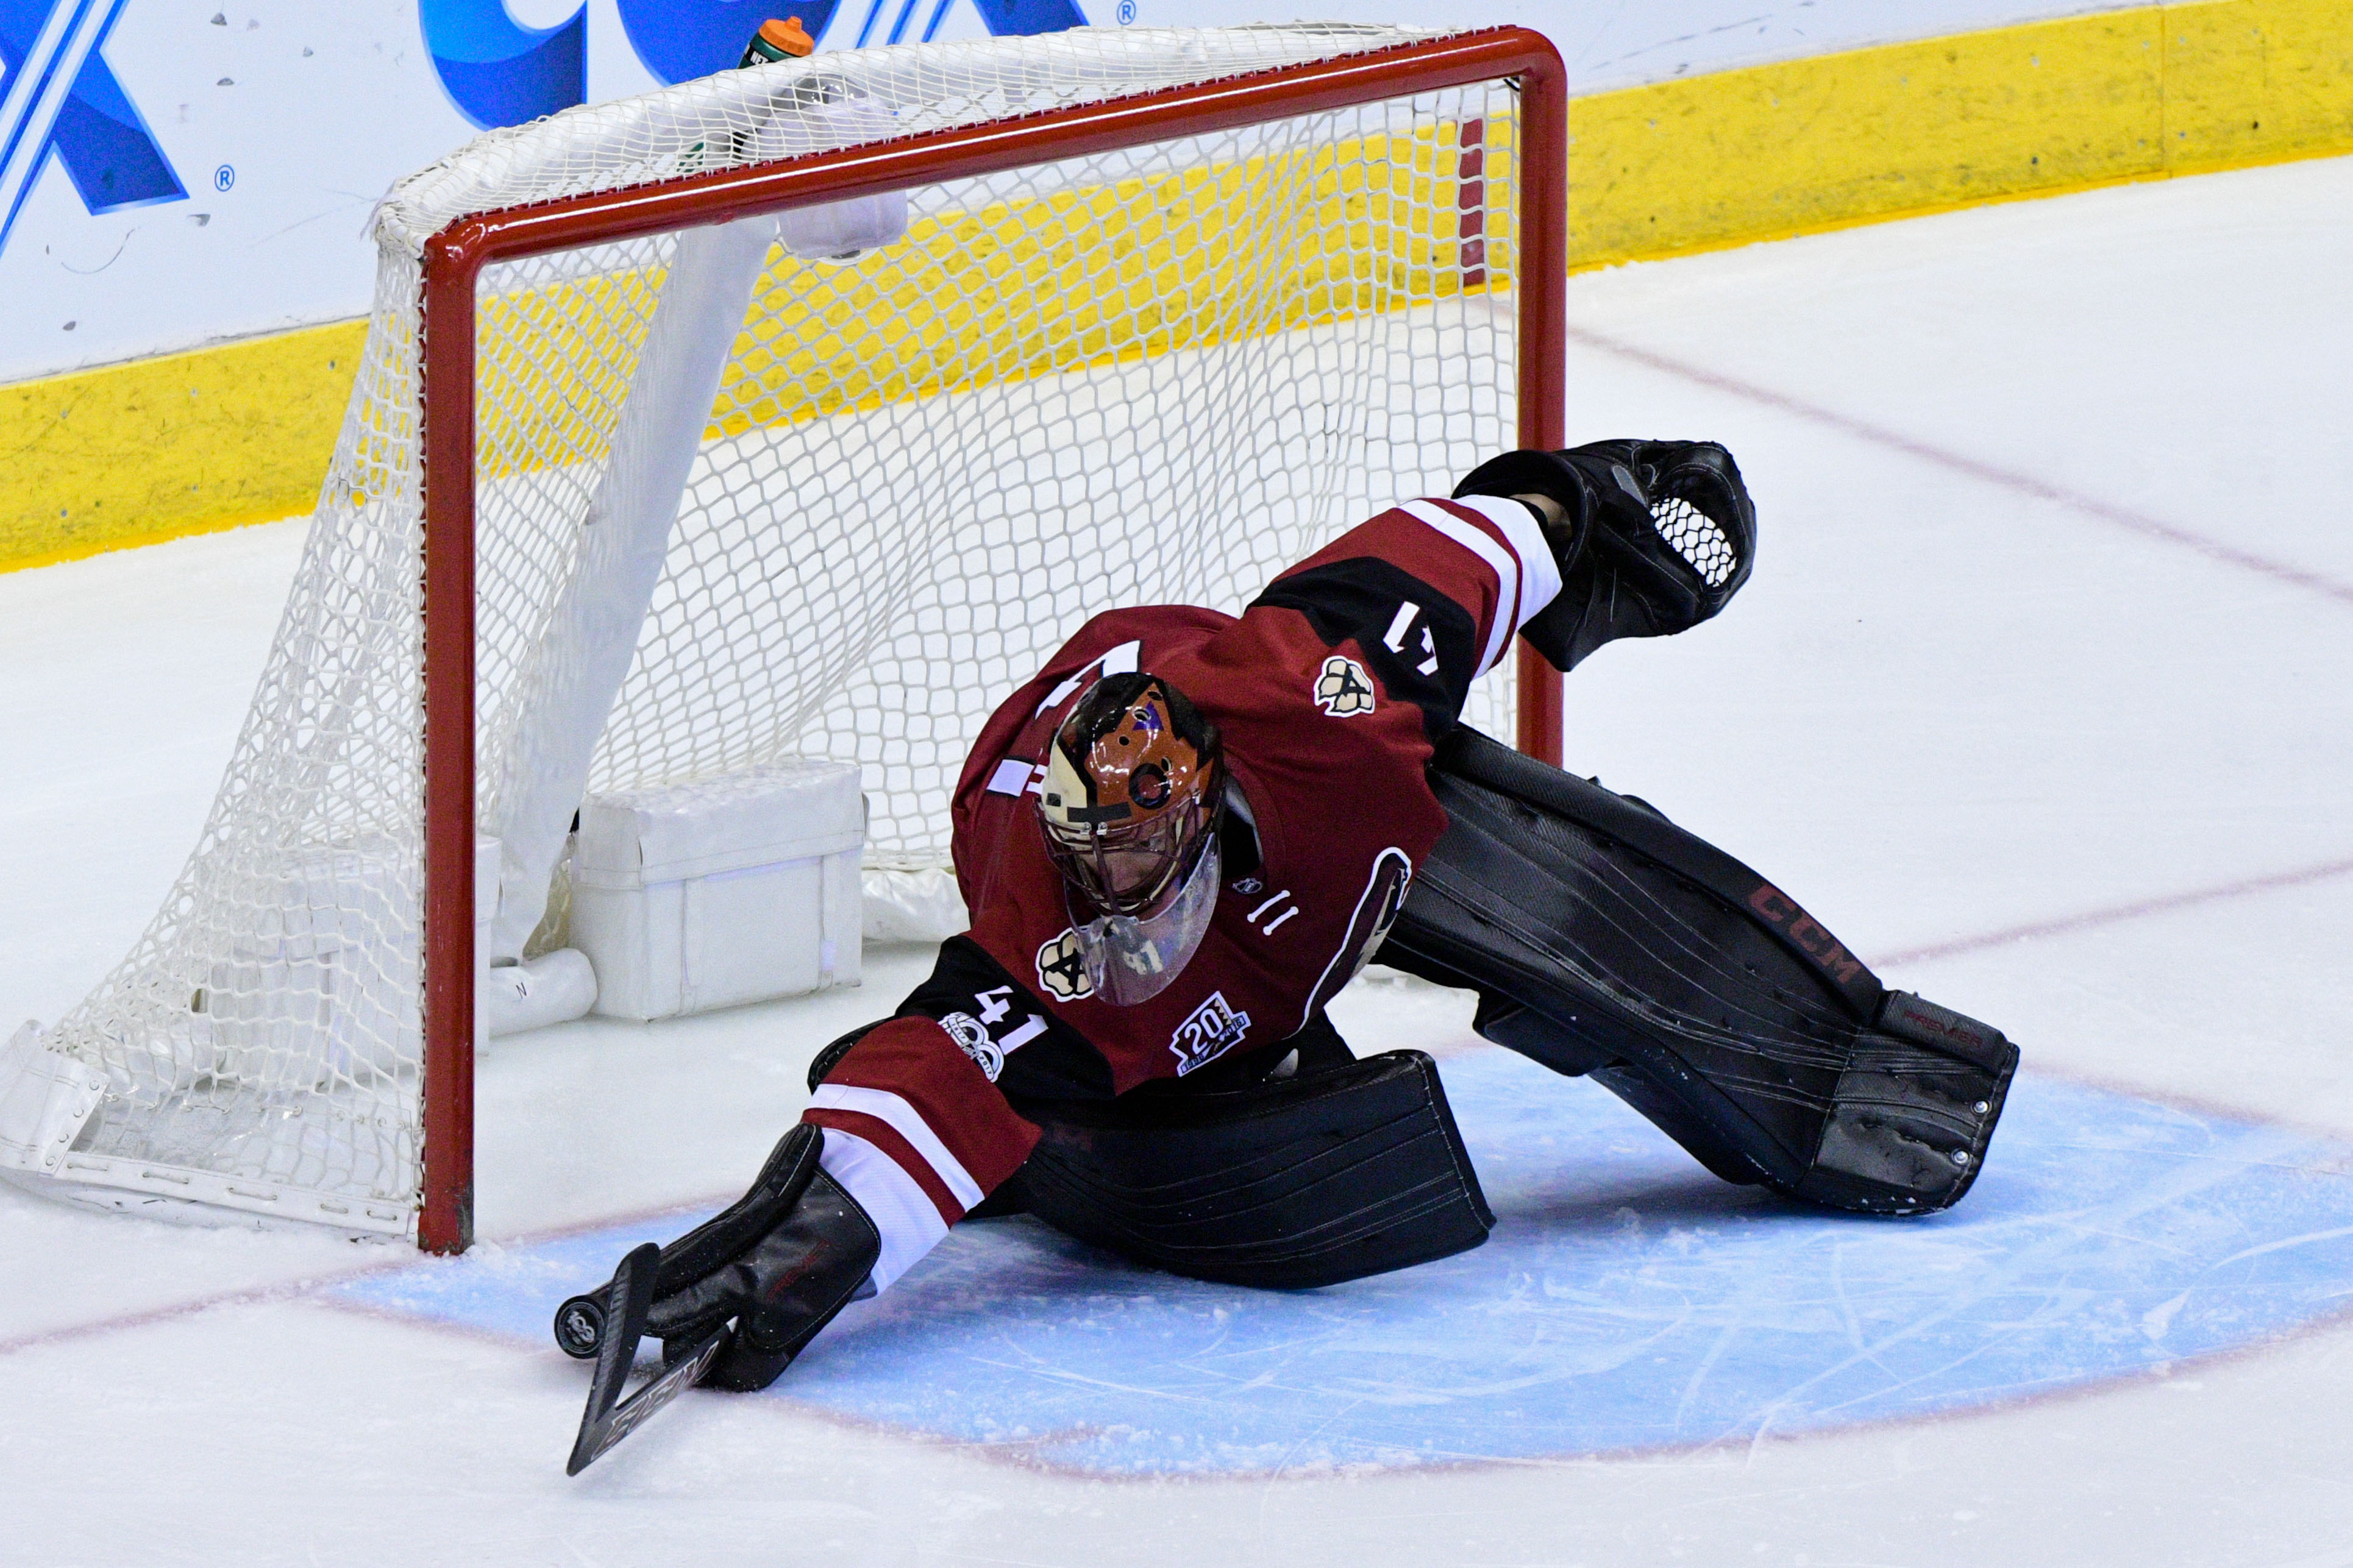 Bringing The Goalies Up To Speed Could Be The Key To A Good Season